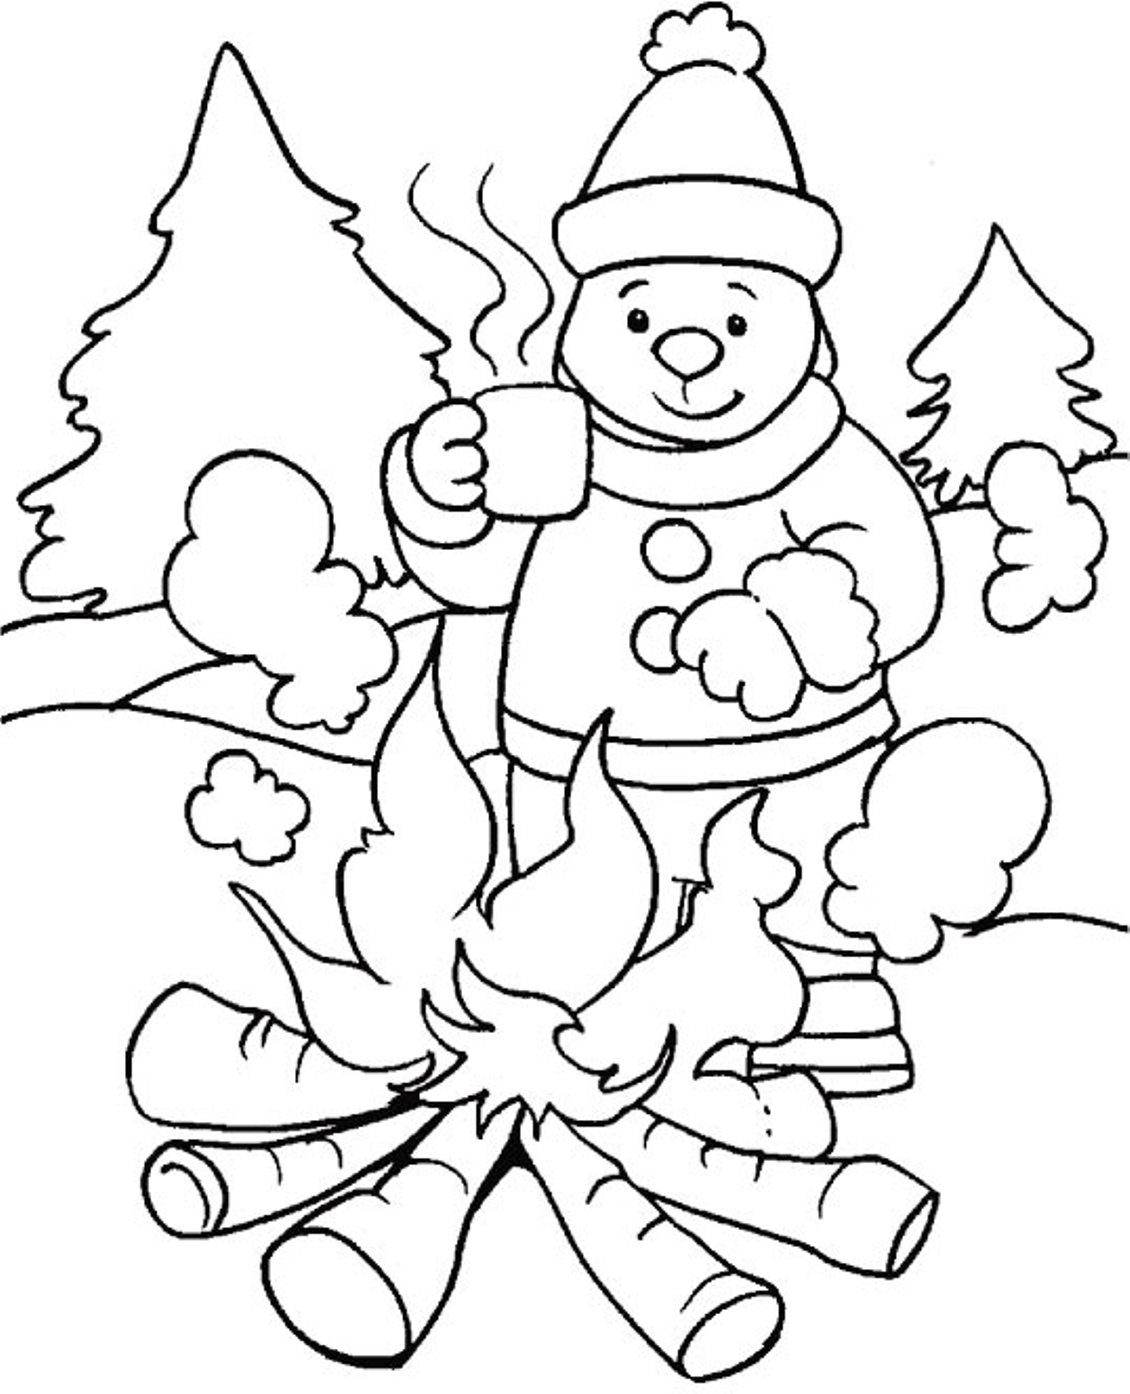 winter coloring pictures winter season coloring pages crafts and worksheets for coloring winter pictures